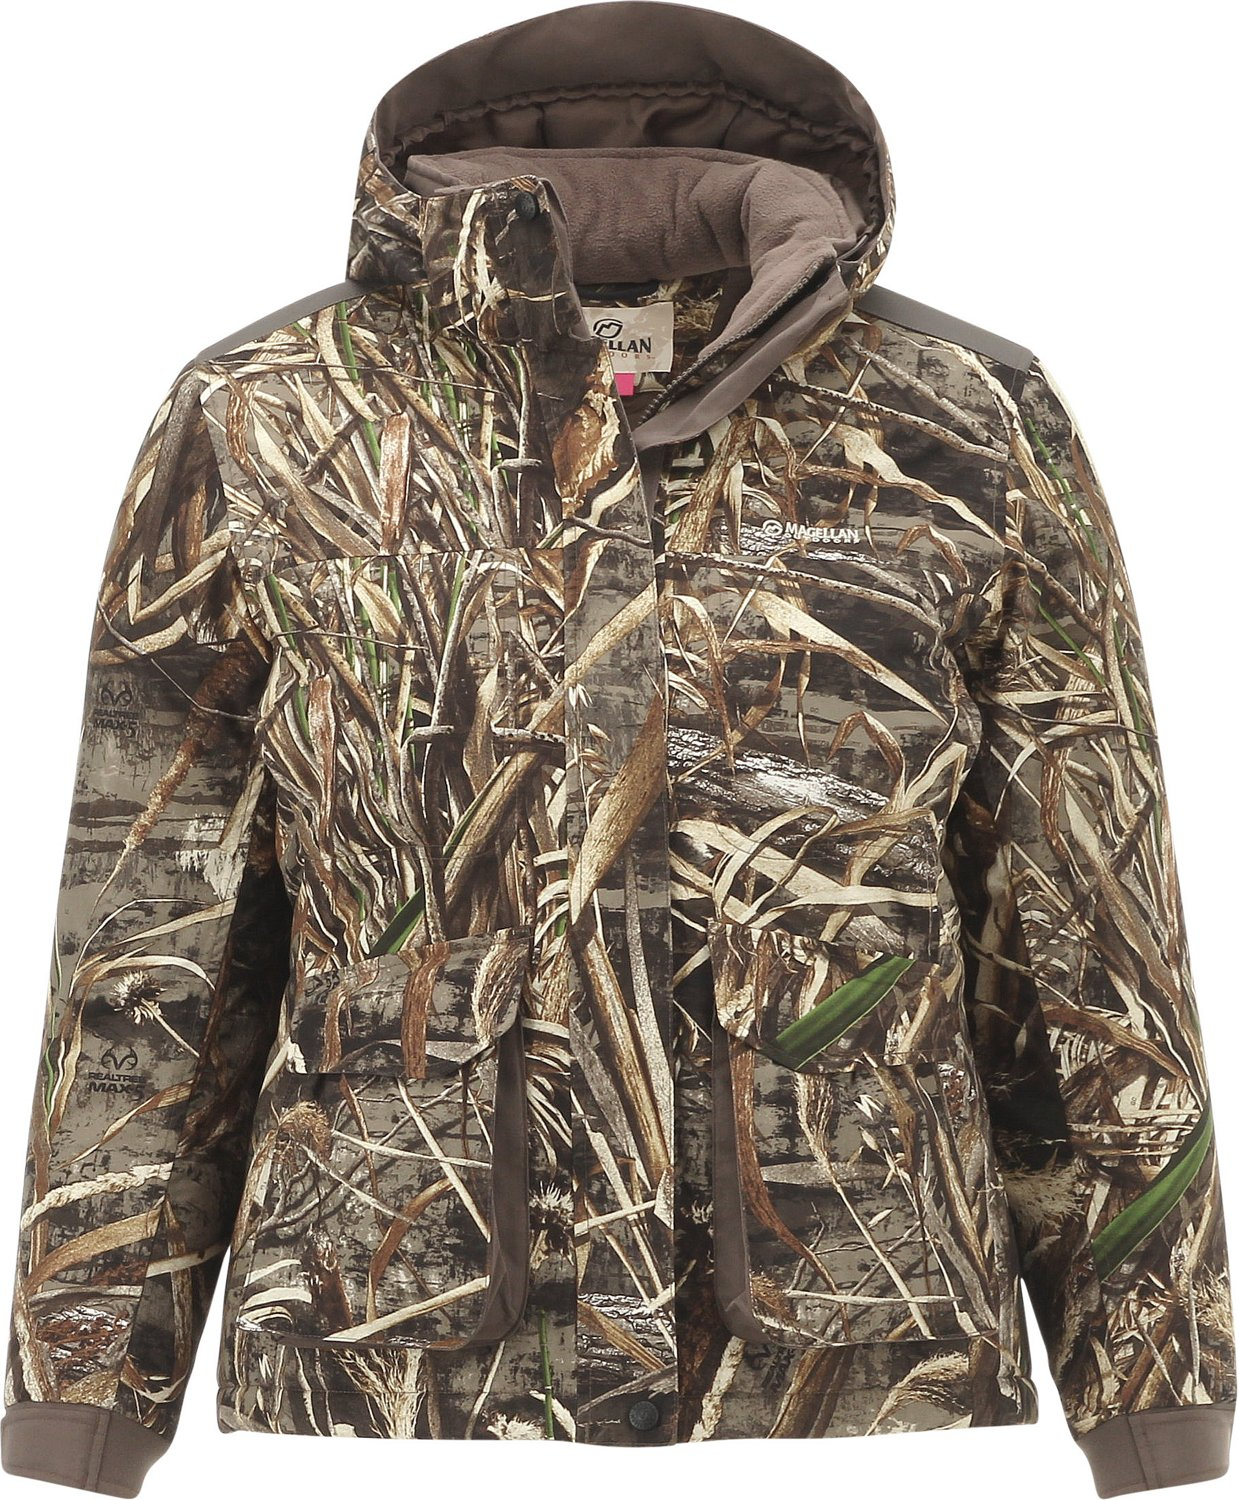 97f506ec3fc Display product reviews for Magellan Outdoors Women s Pintail Waterfowl  Insulated Jacket